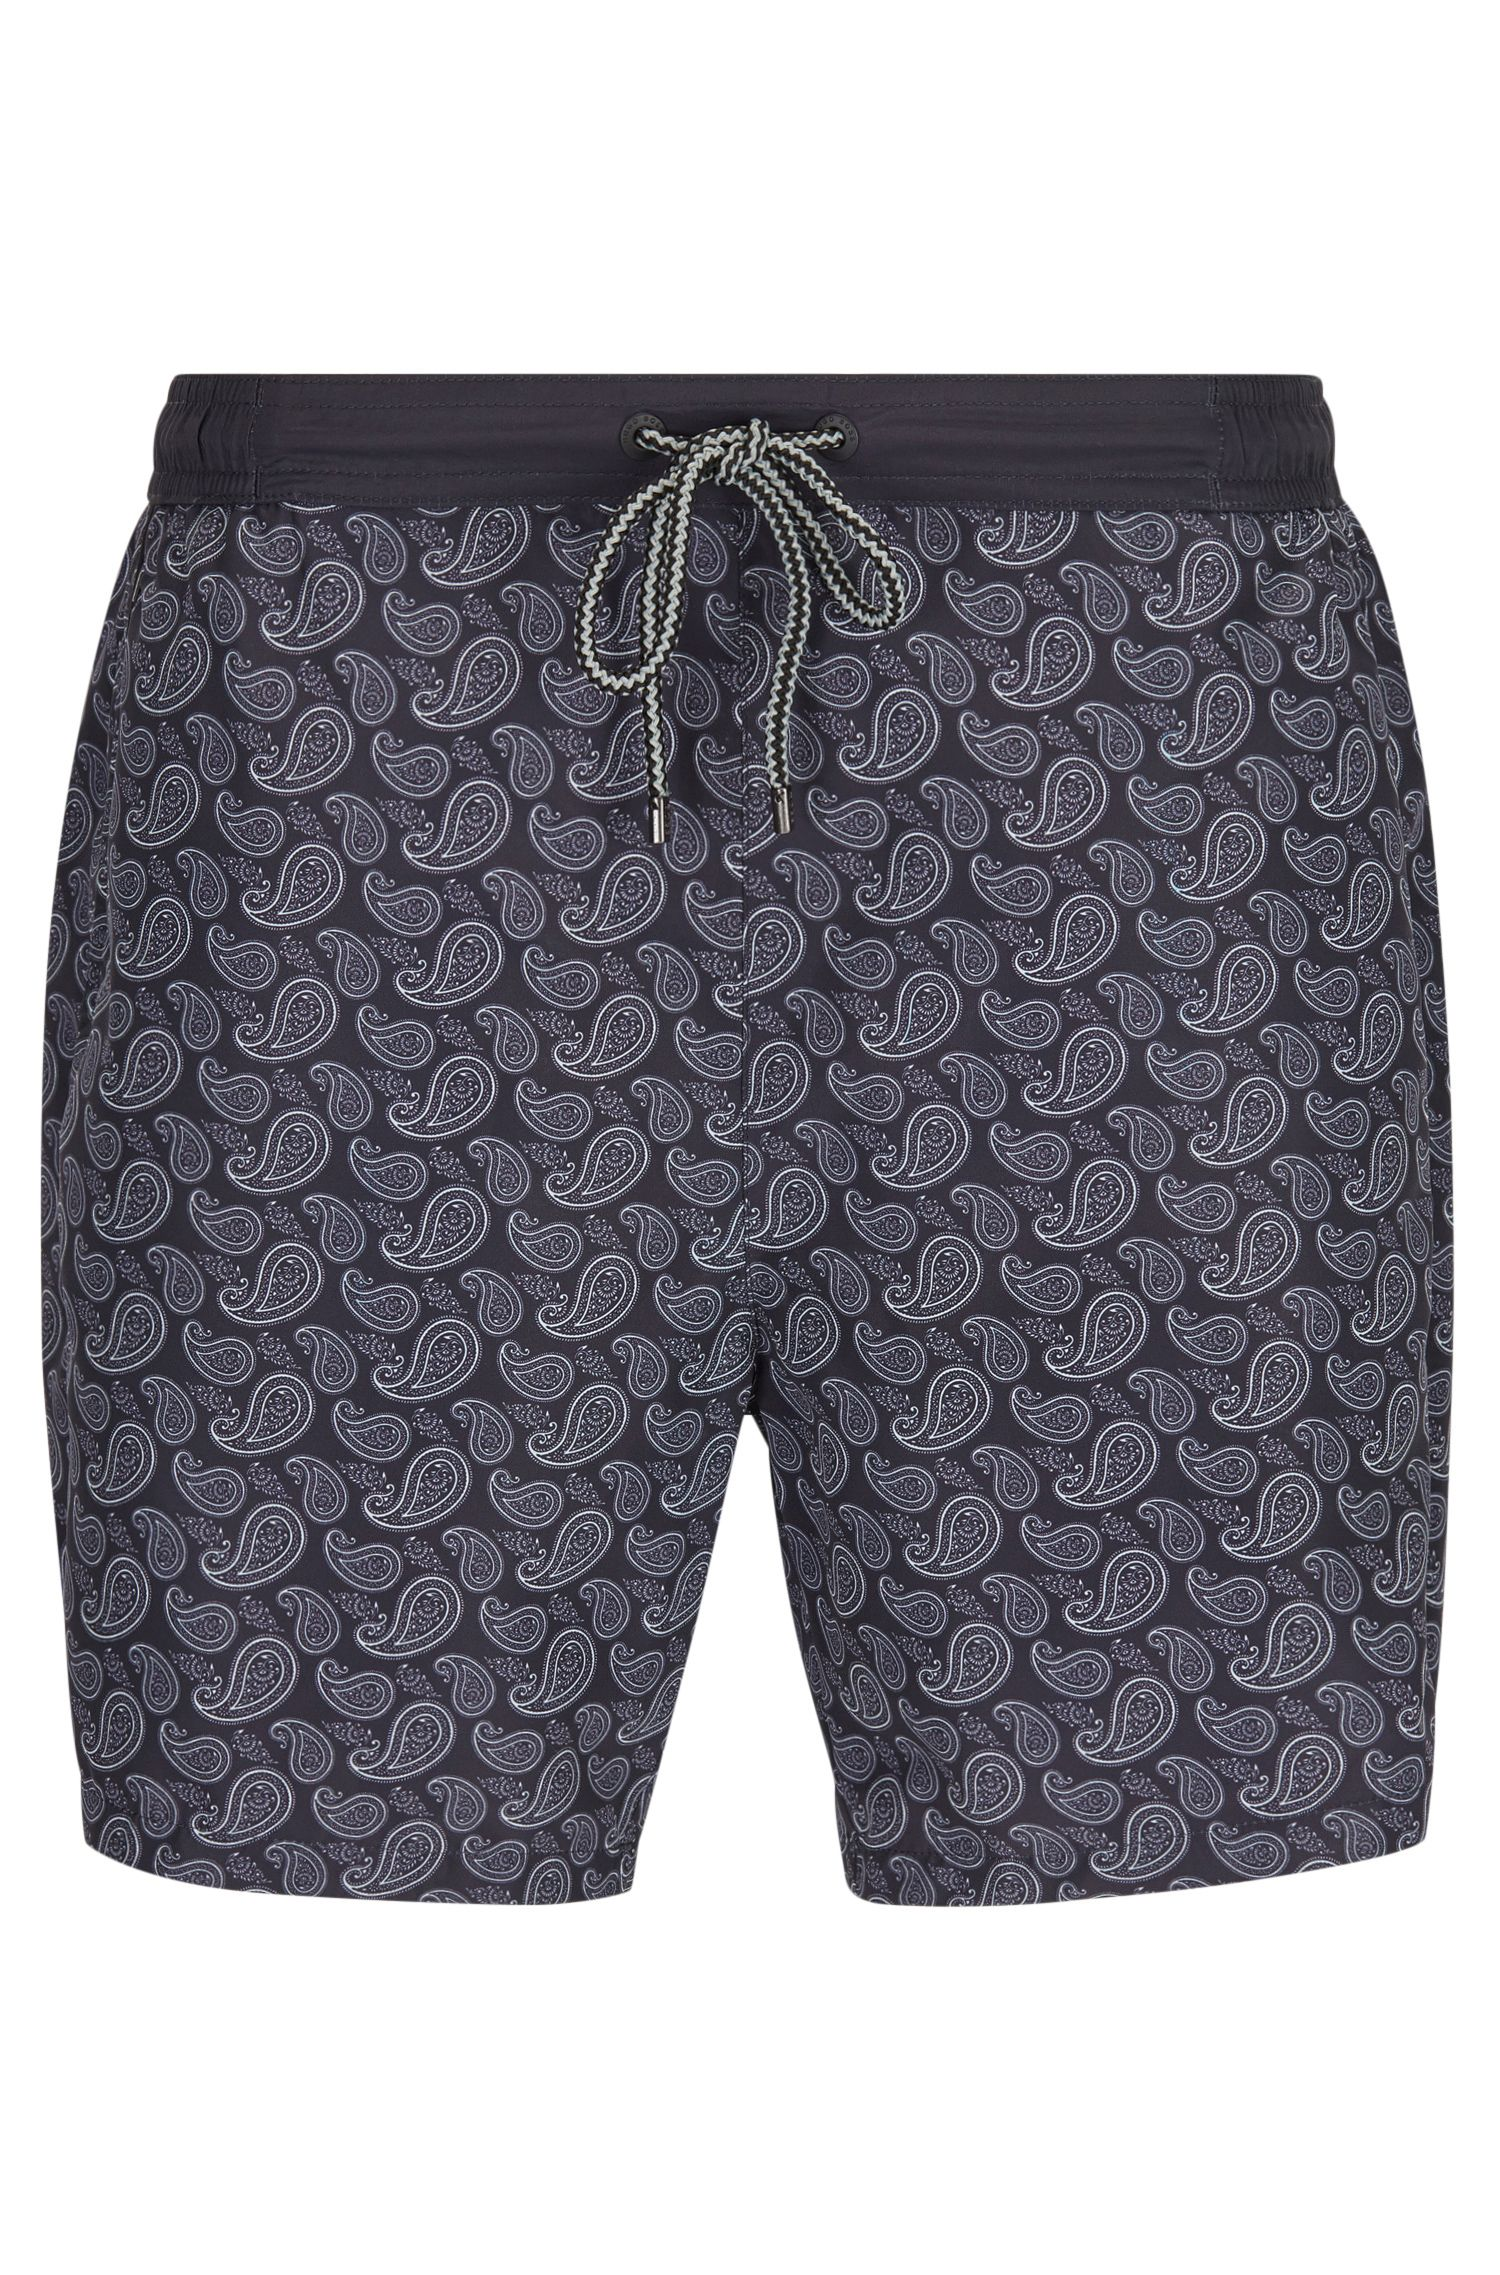 Paisley Quick Dry Swim Trunks | Scorpionfish